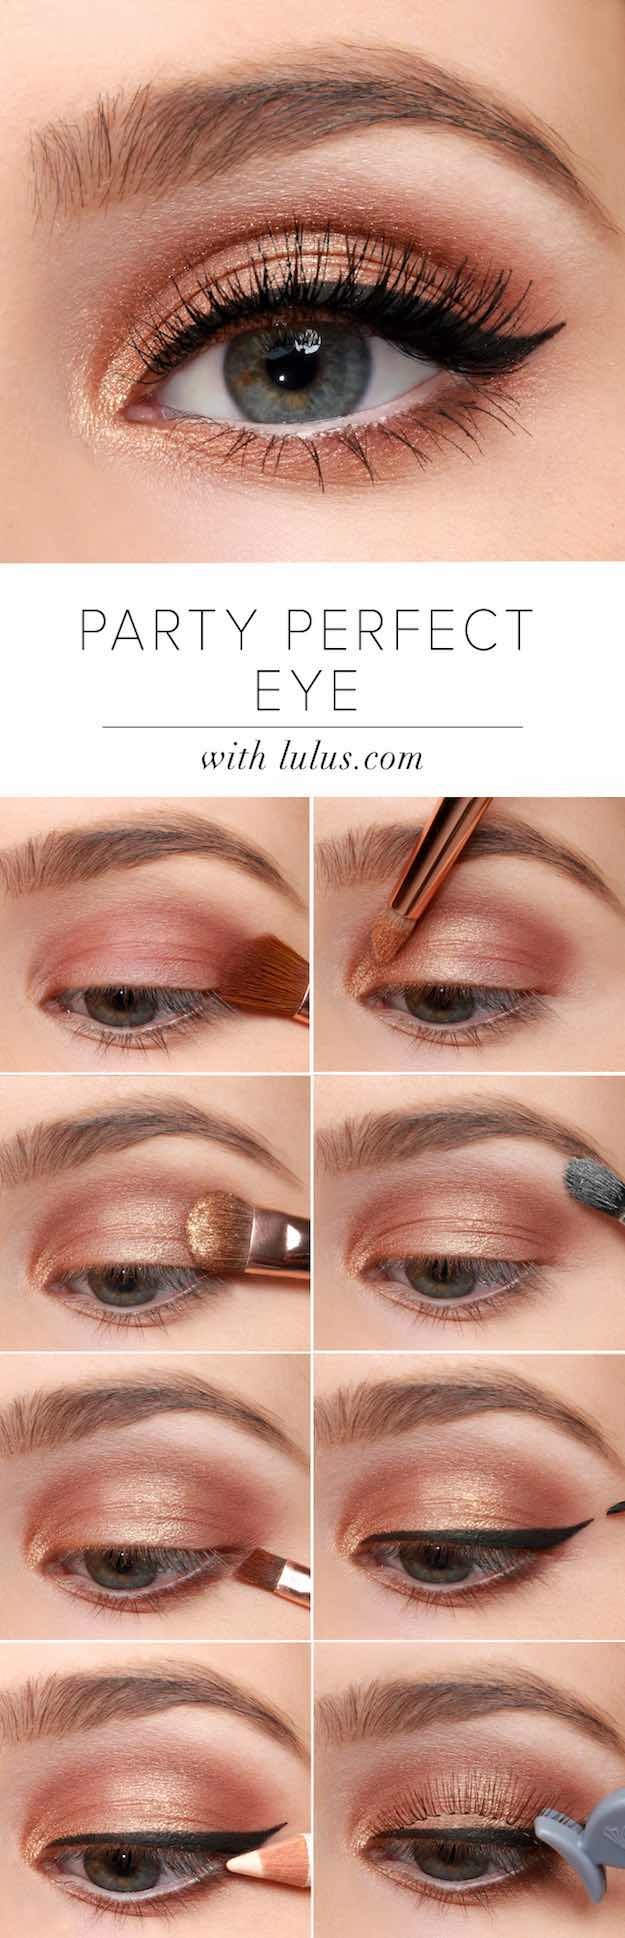 Eye Makeup Tutorials Pretty Peach Makeup Tutorials To Create With Your Peach Palettes